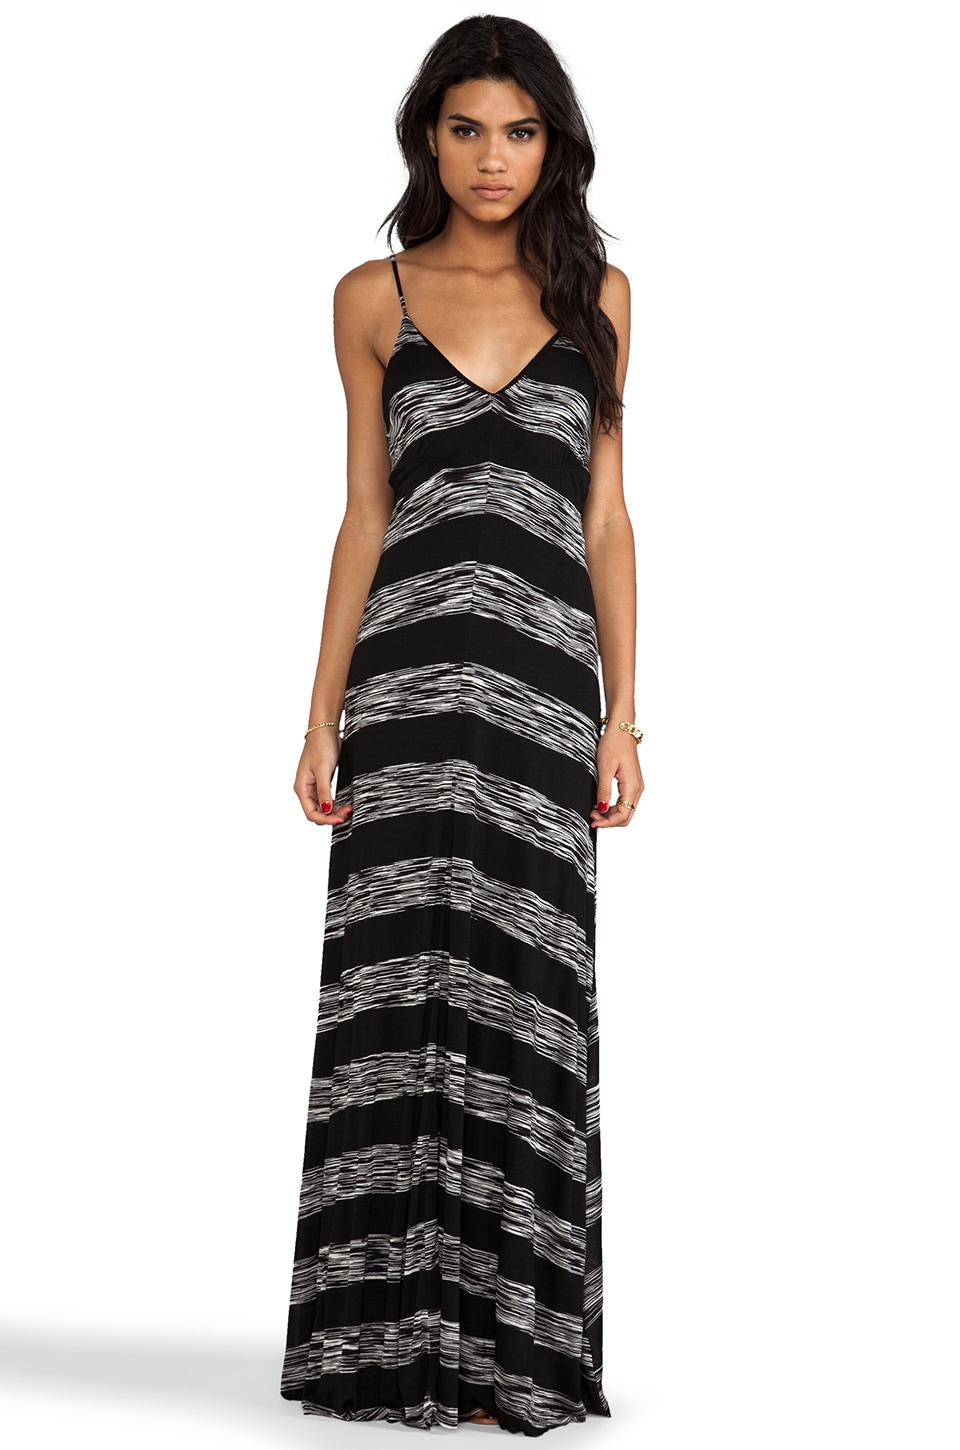 Eight Sixty Space Dye Maxi Dress in Black & White